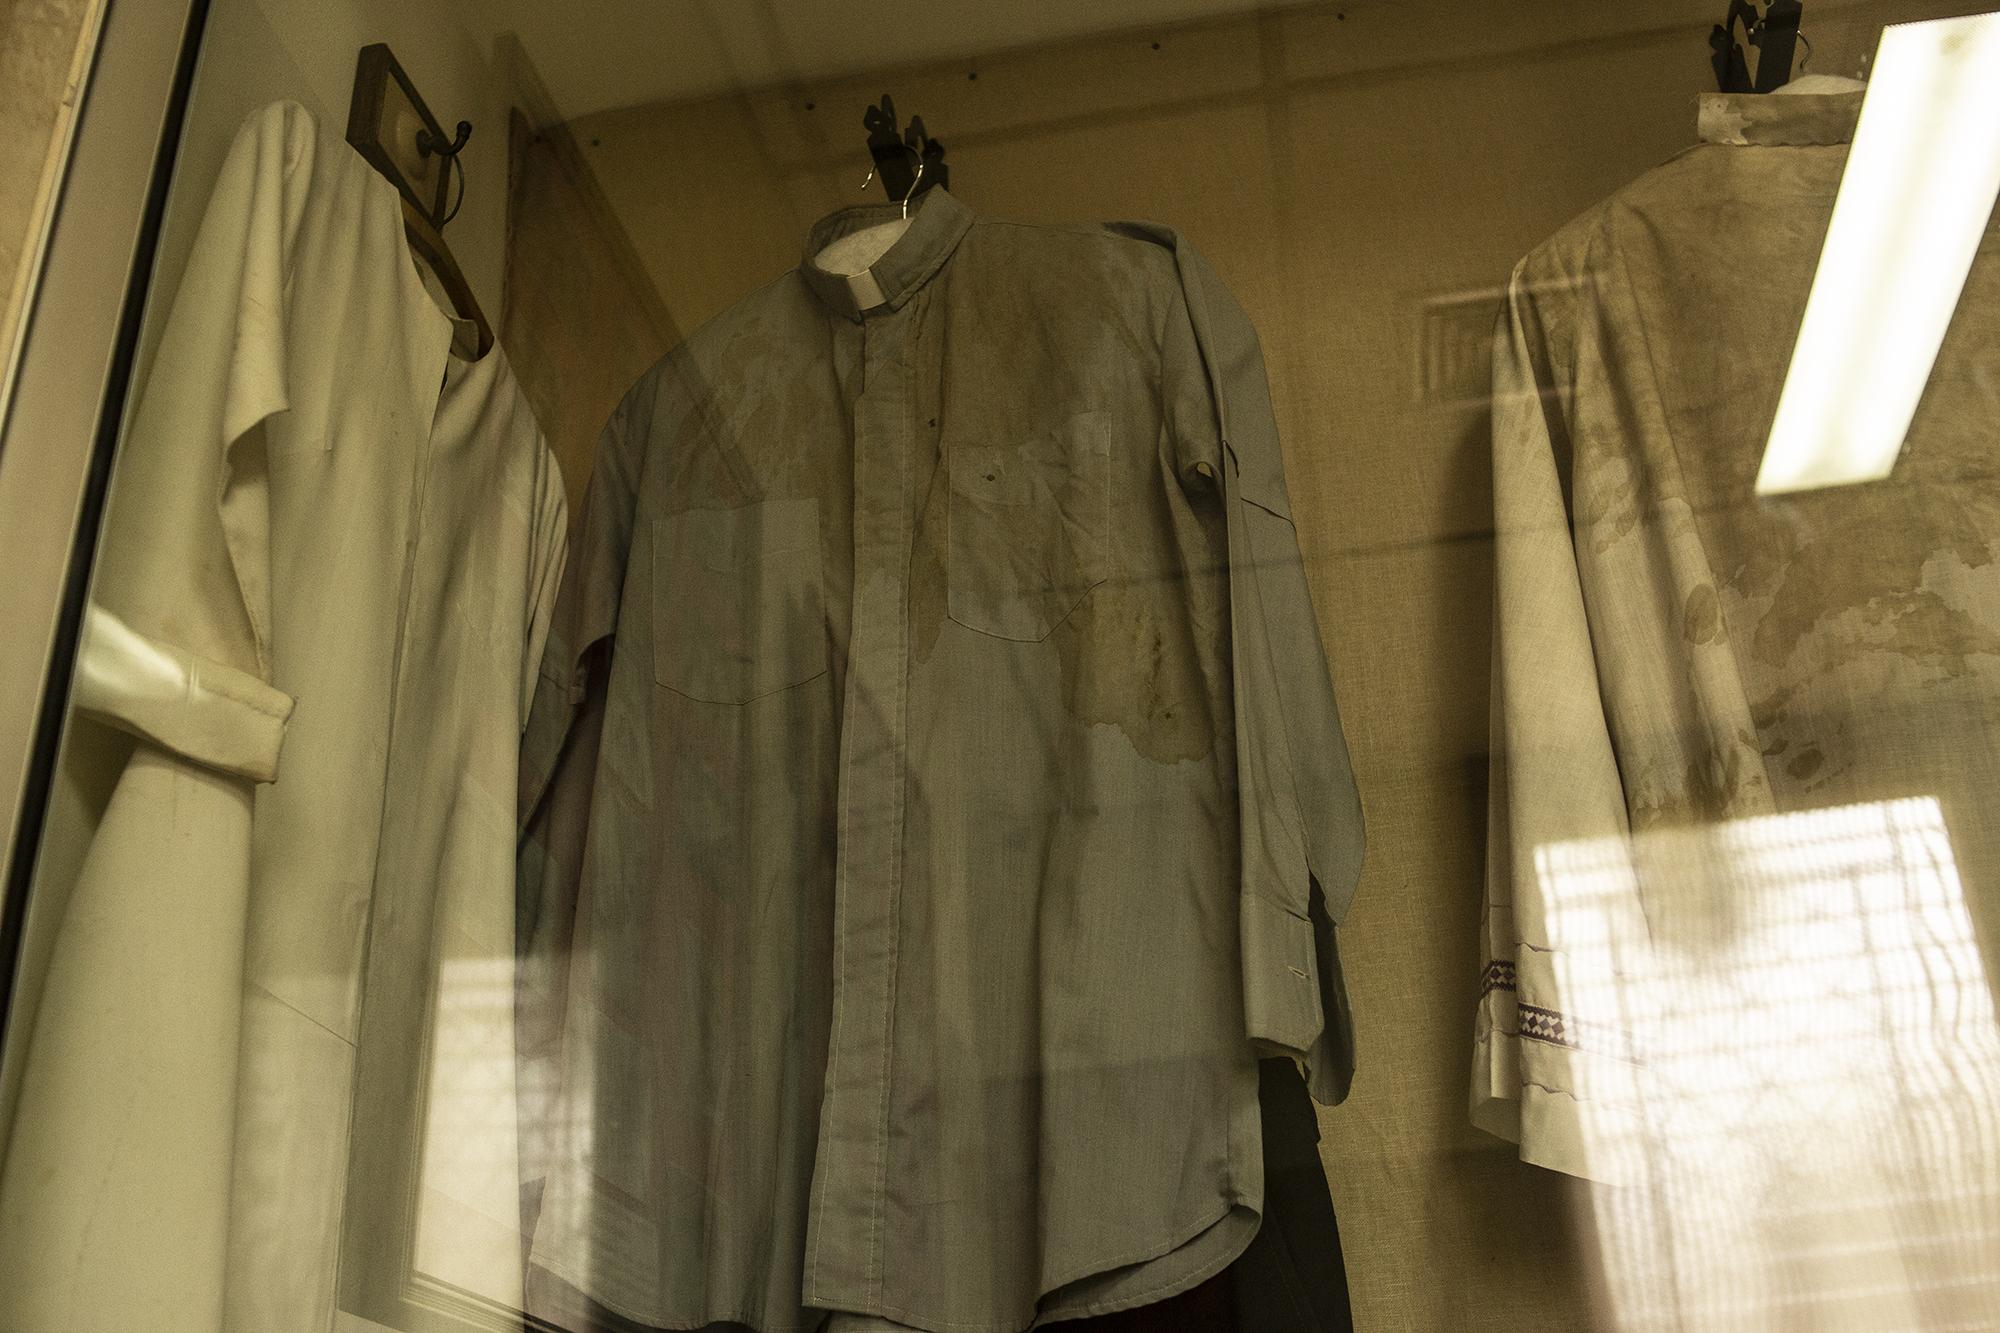 The vestments that Monseñor Romero used for his last mass are now kept in the bedroom of his small house on the grounds of the Divine Providence Hospital. Today the house is a museum. The blood stains and bullet hole are visible on the left side of the gray shirt. Photo for El Faro: Carlos Barrera.